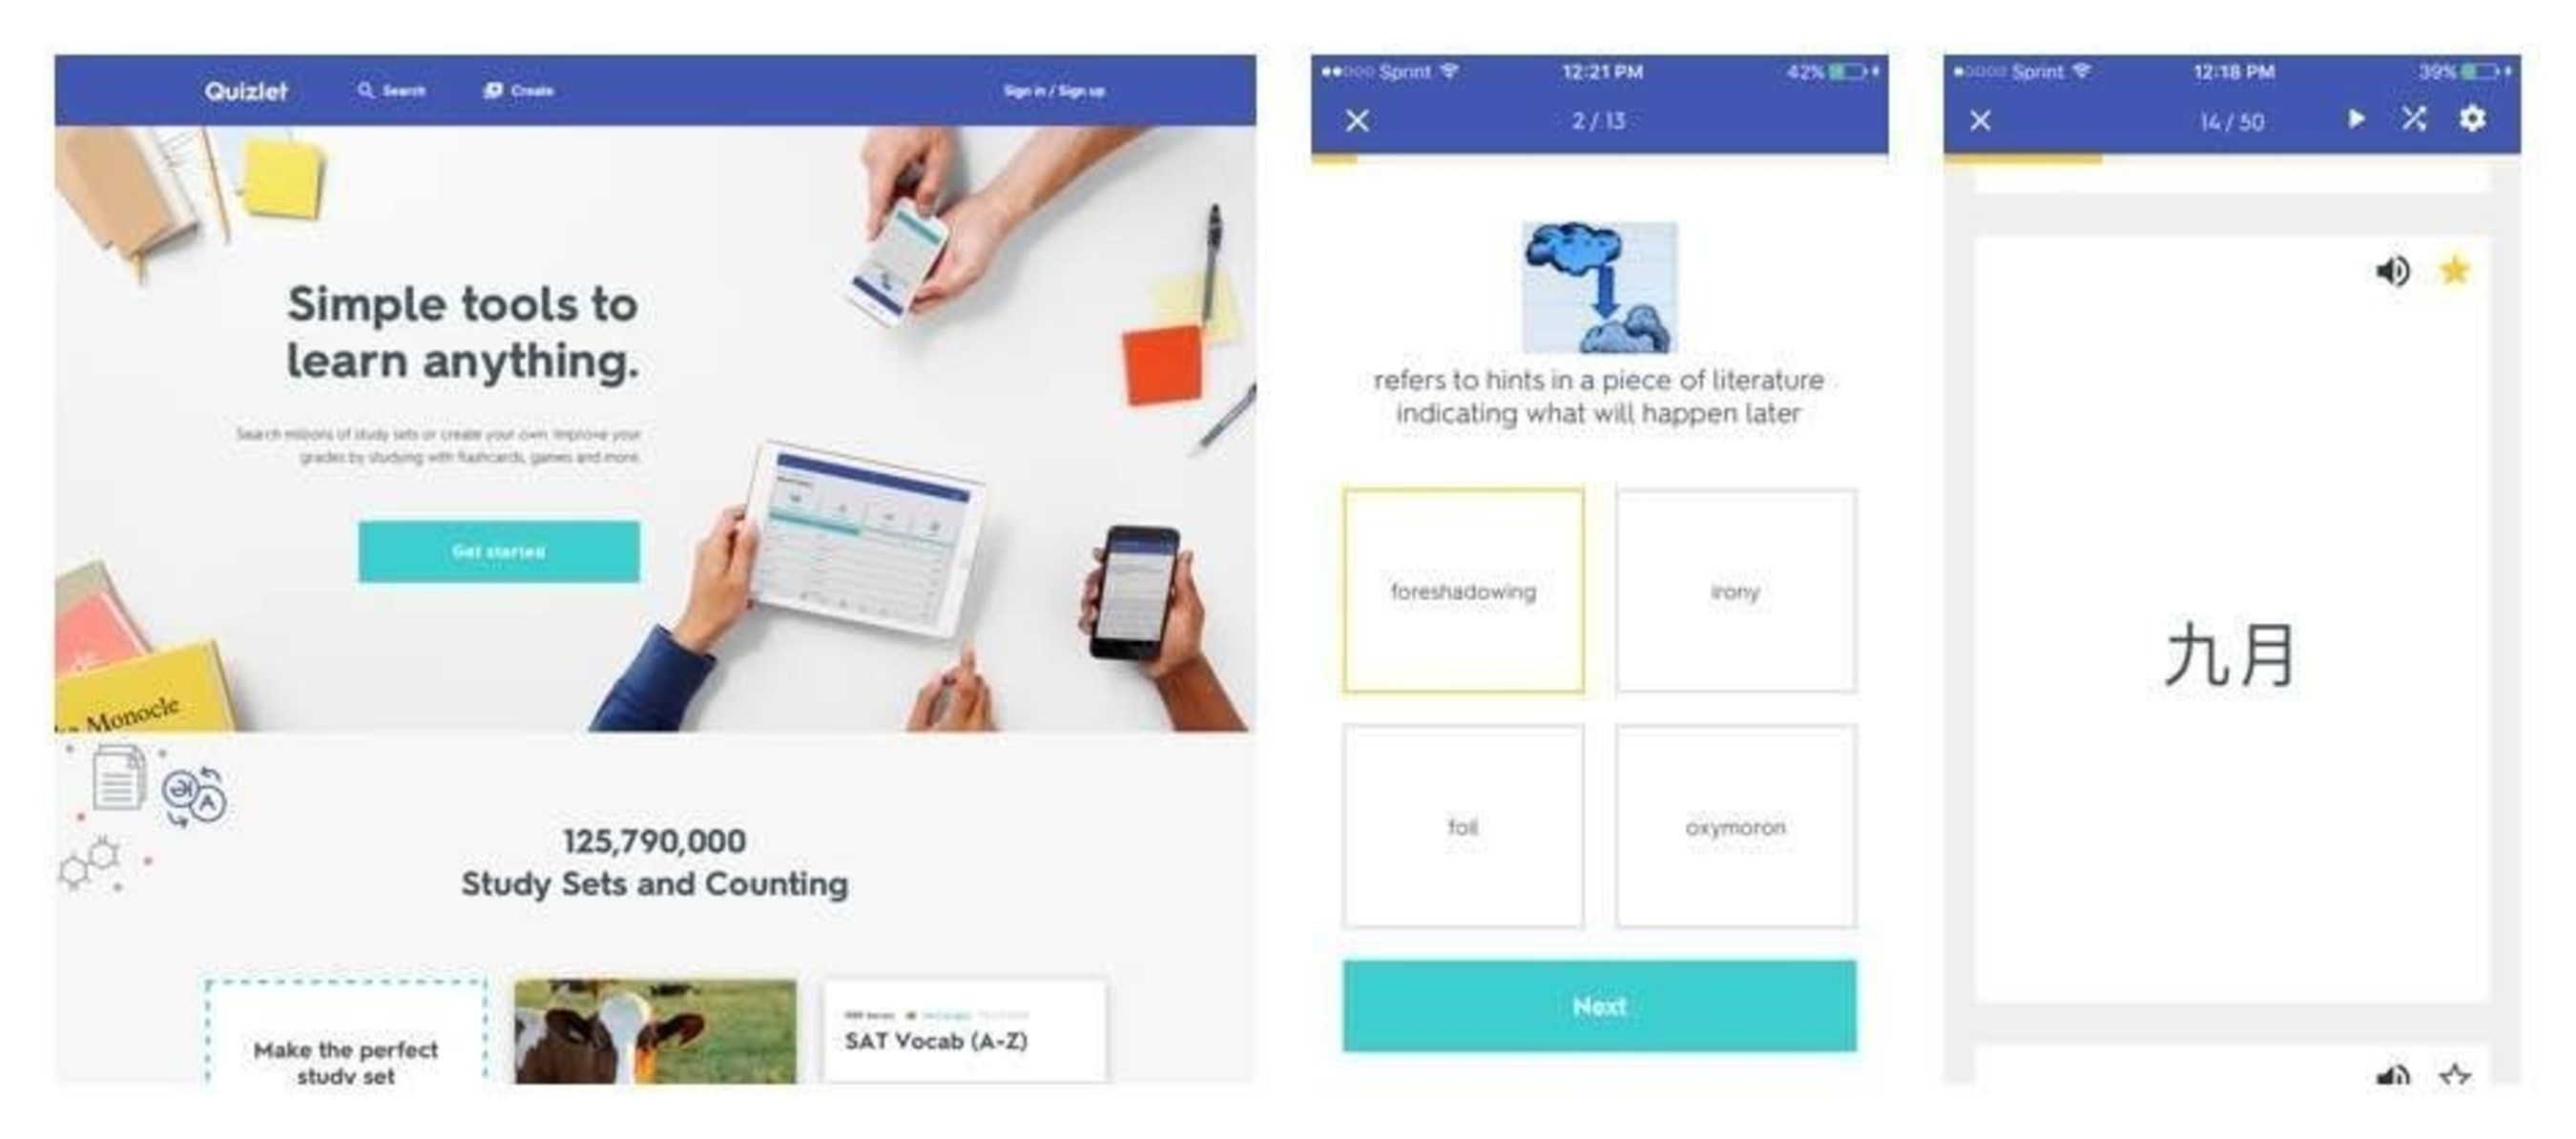 All New Quizlet Launches with International Focus Including